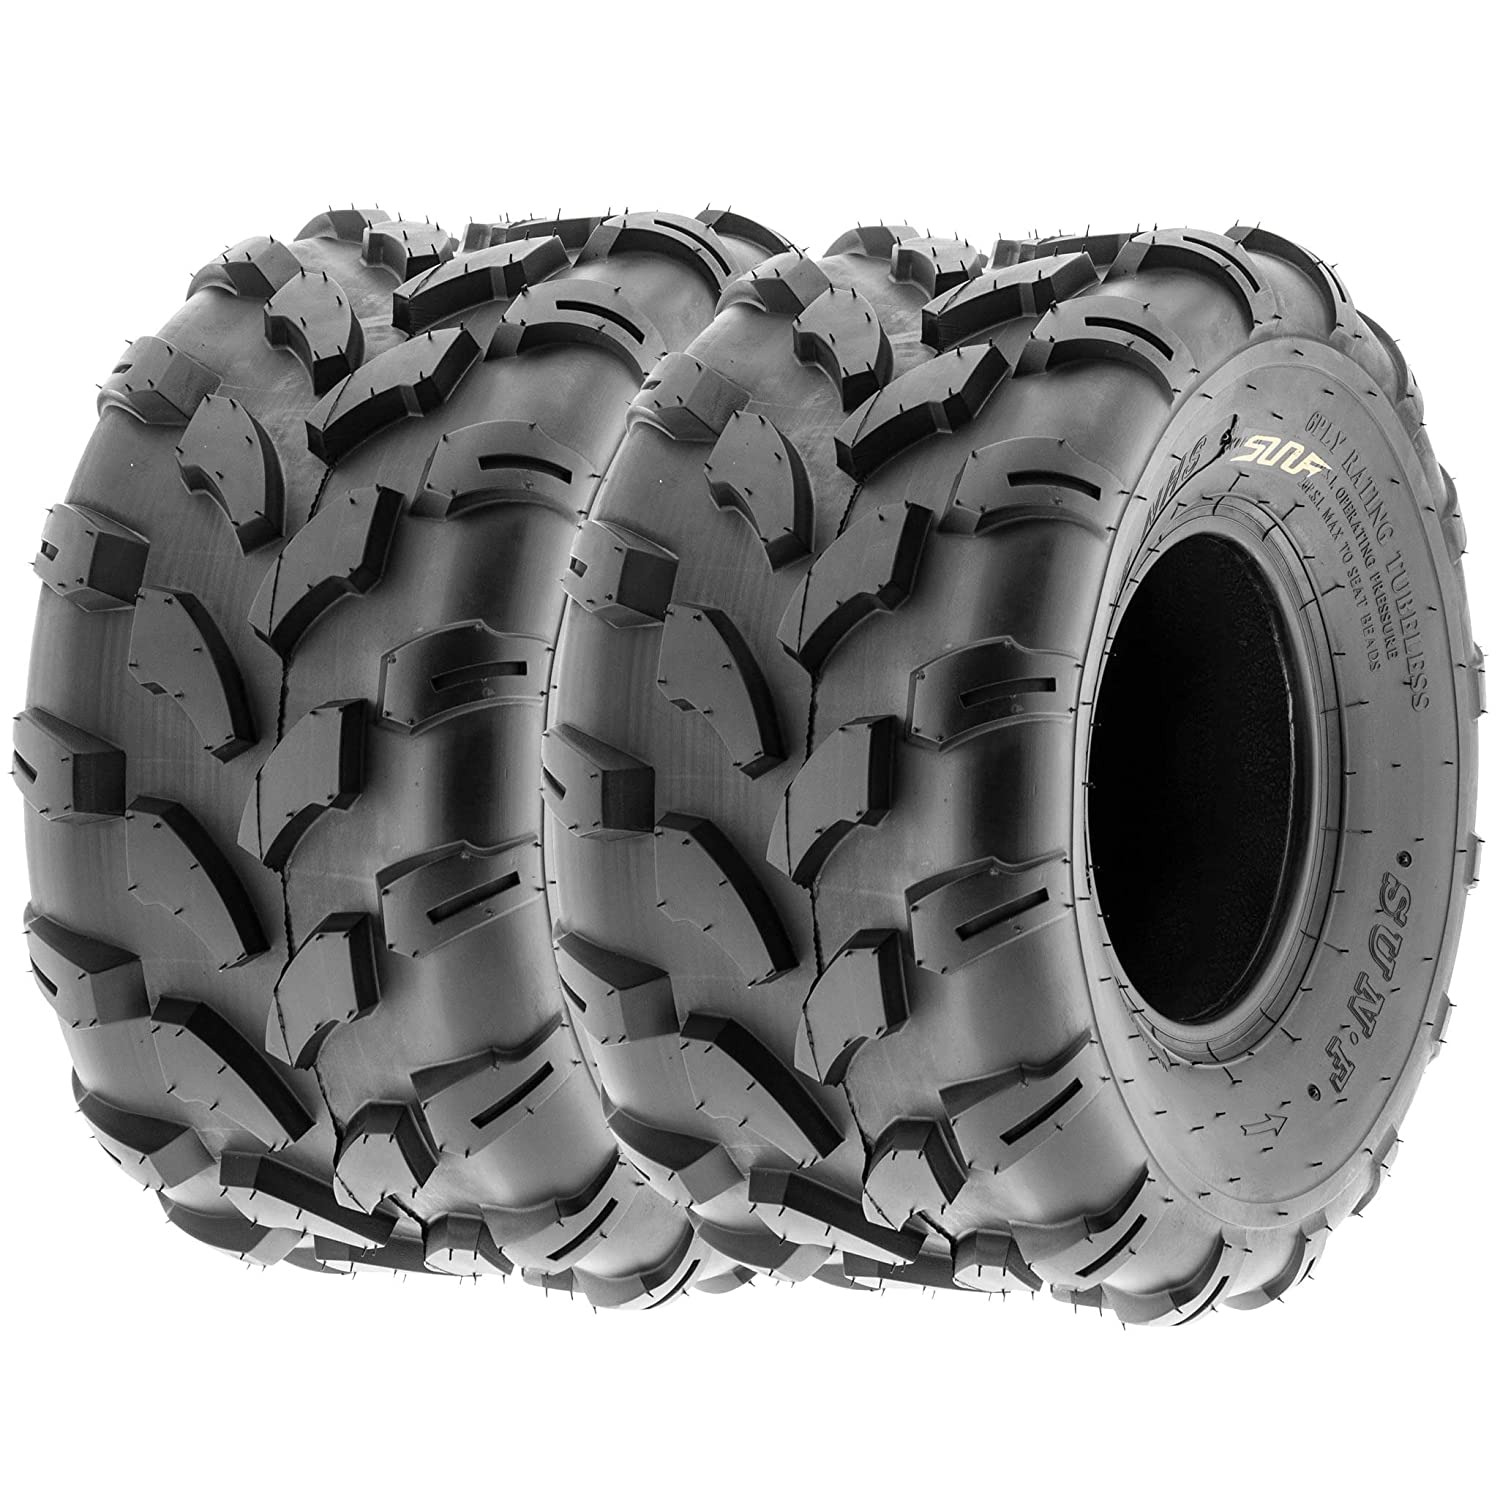 Replacing Lawn Tractor Stock Tires For Better Traction - Landscaping & Lawn Care - DIY Chatroom ...